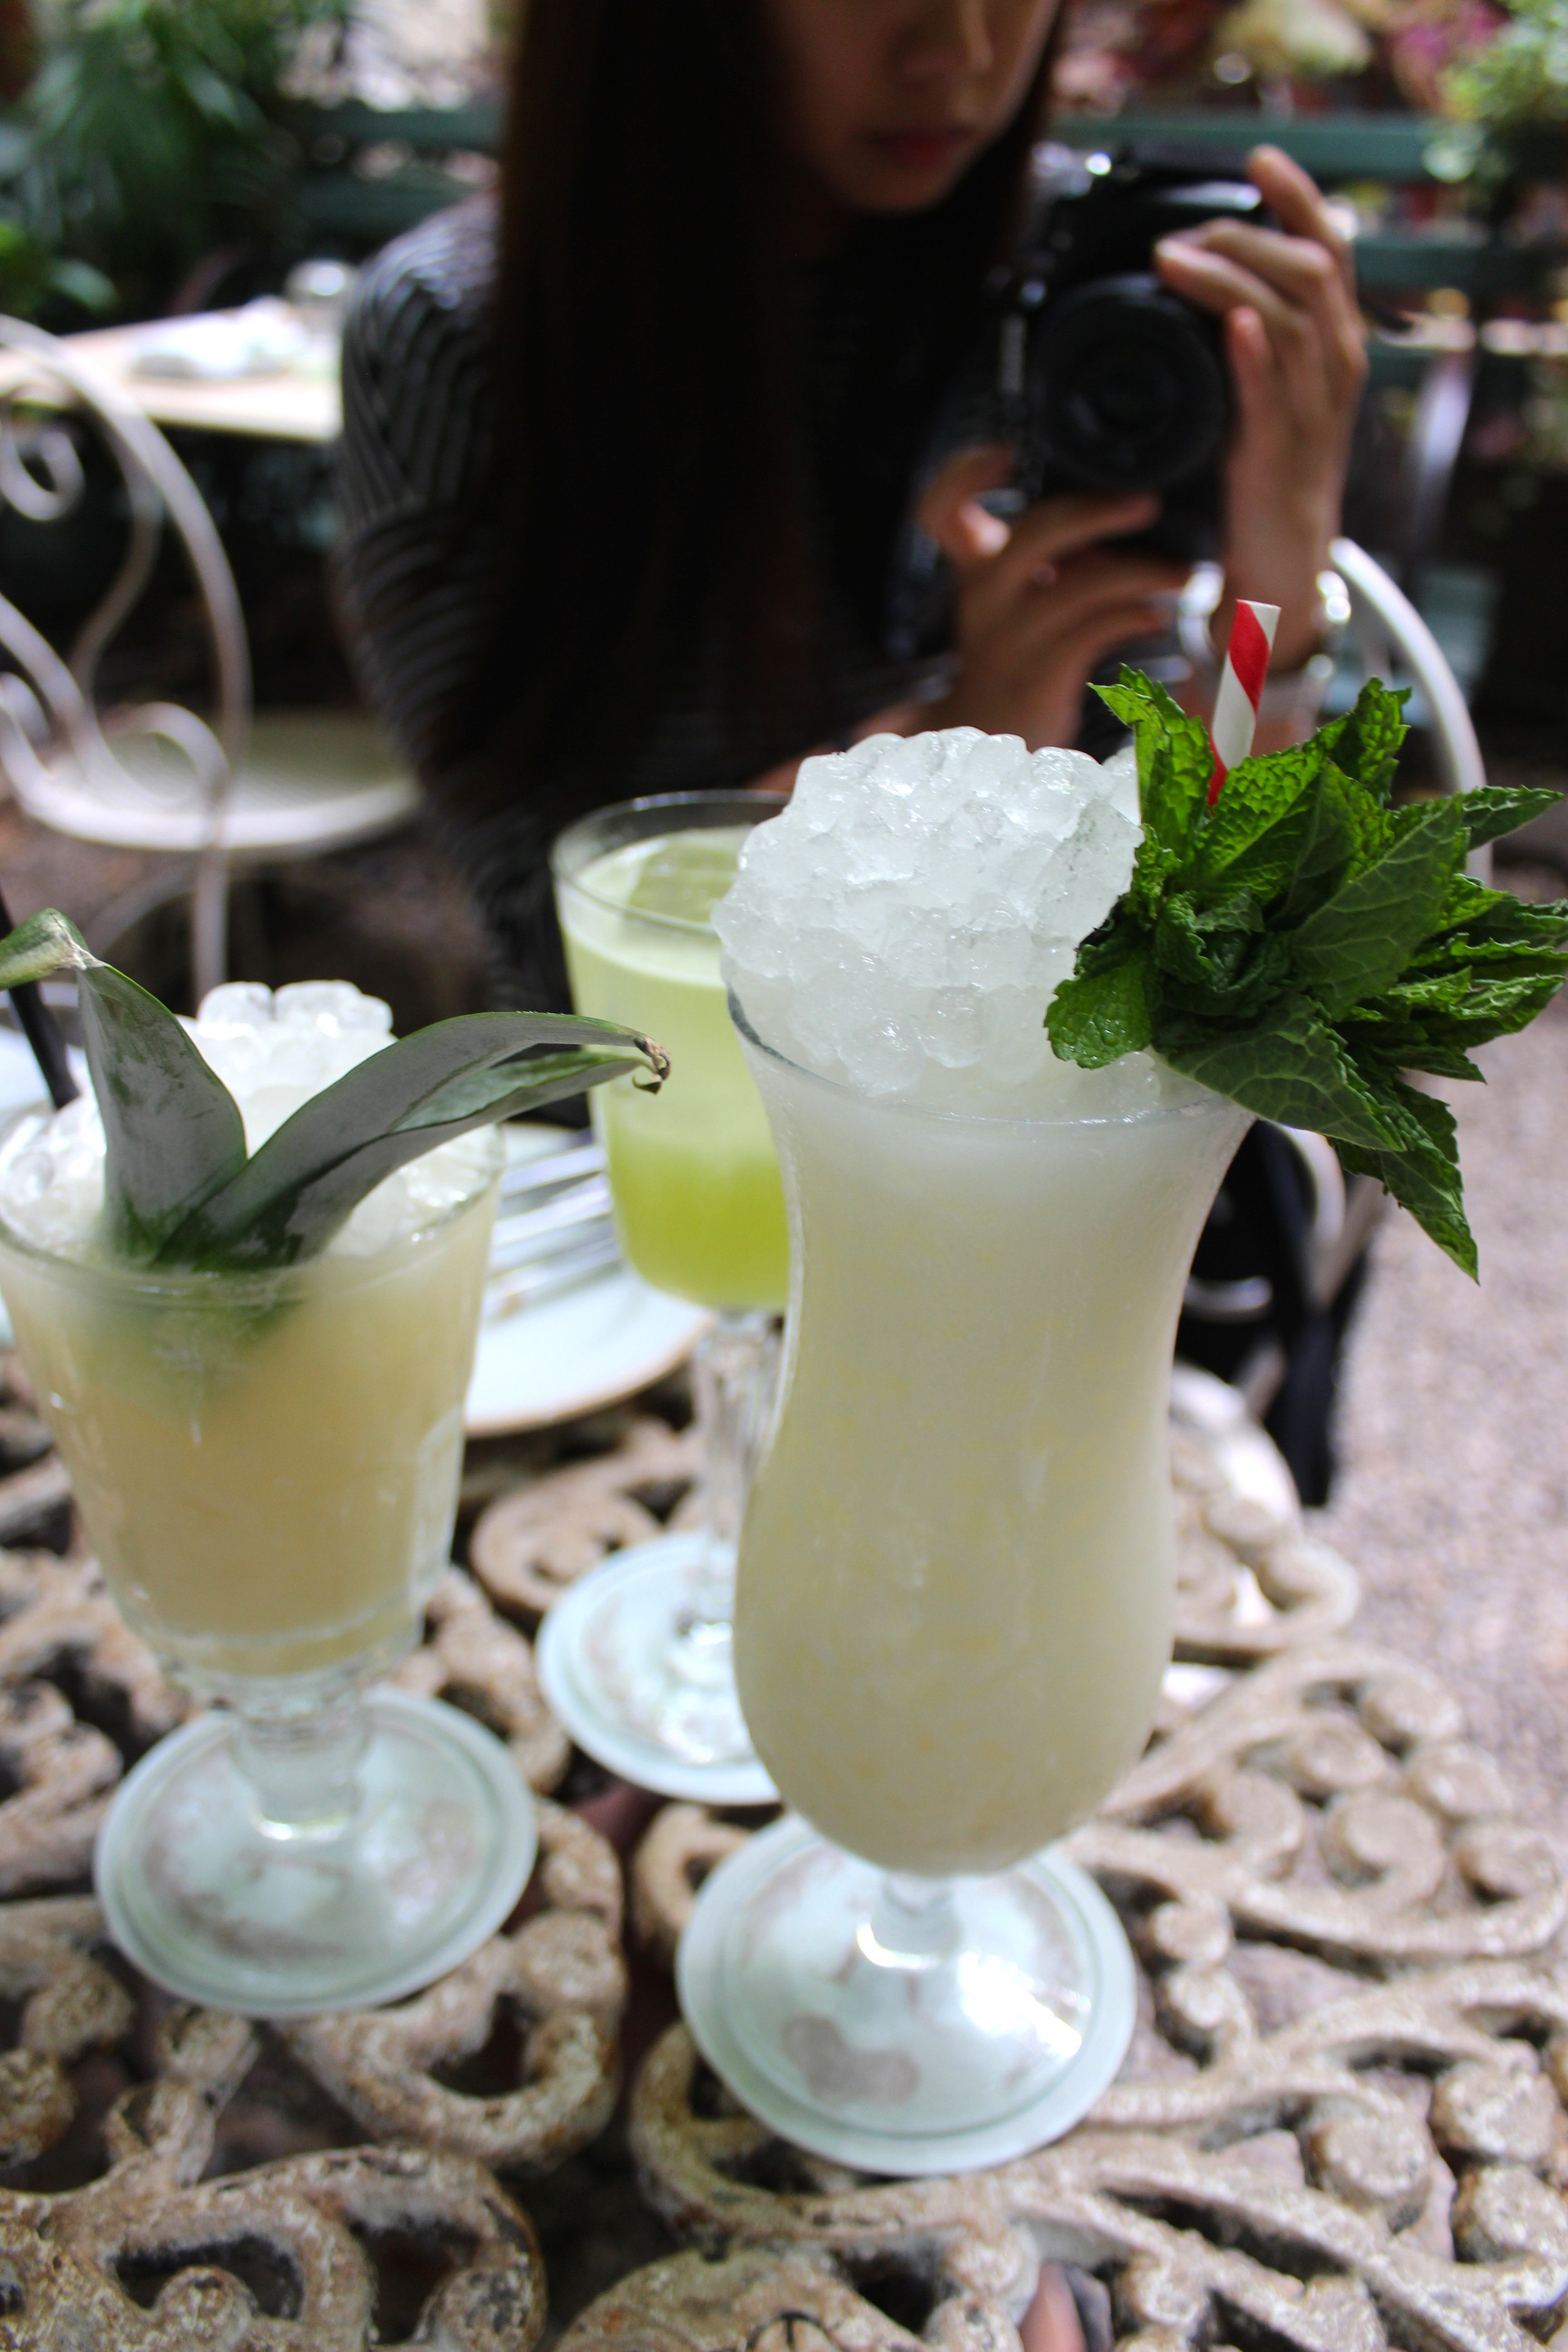 Maison Absinthe Colada, The Great Bambino, and the Walcott Express at Maison Premiere